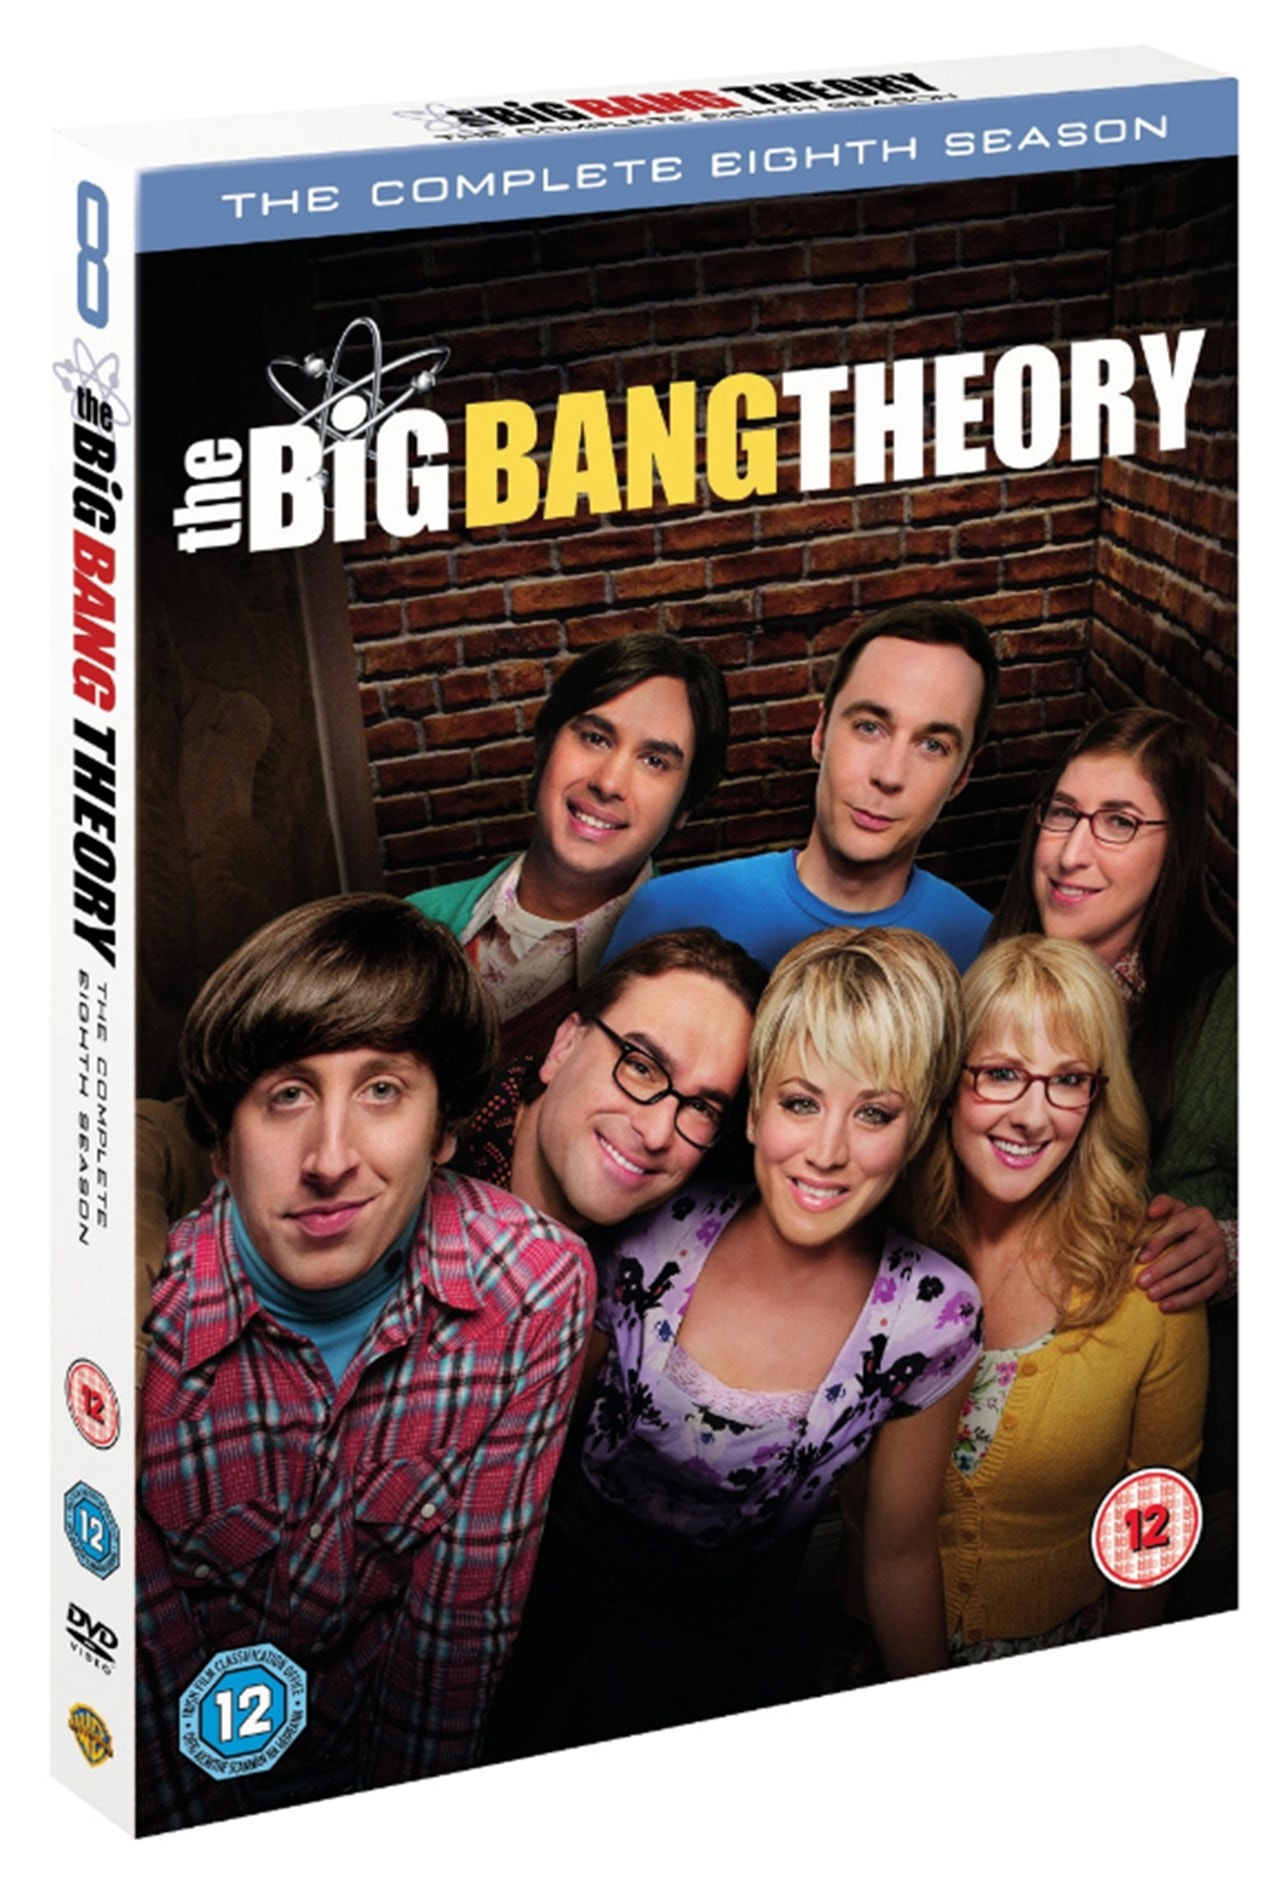 The Big Bang Theory: The Complete Eighth Season - 2